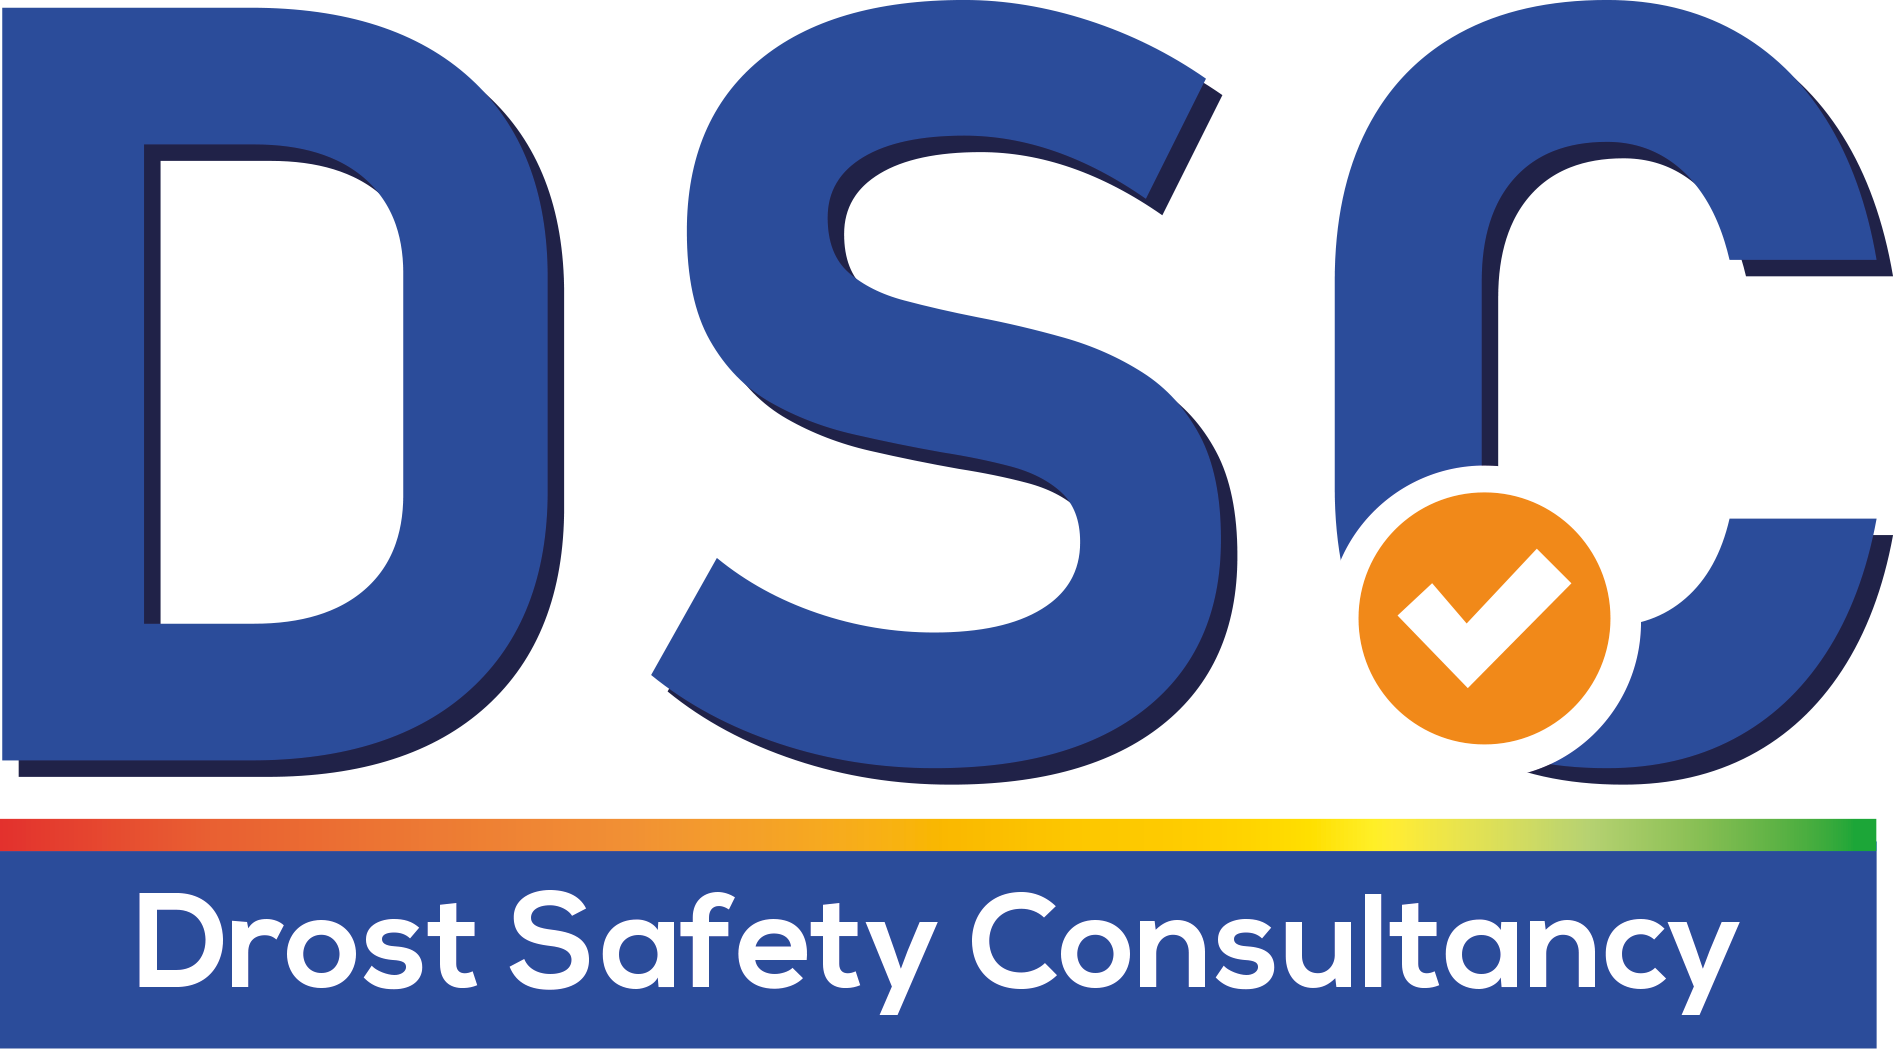 Drost Safety Consultancy - DSC